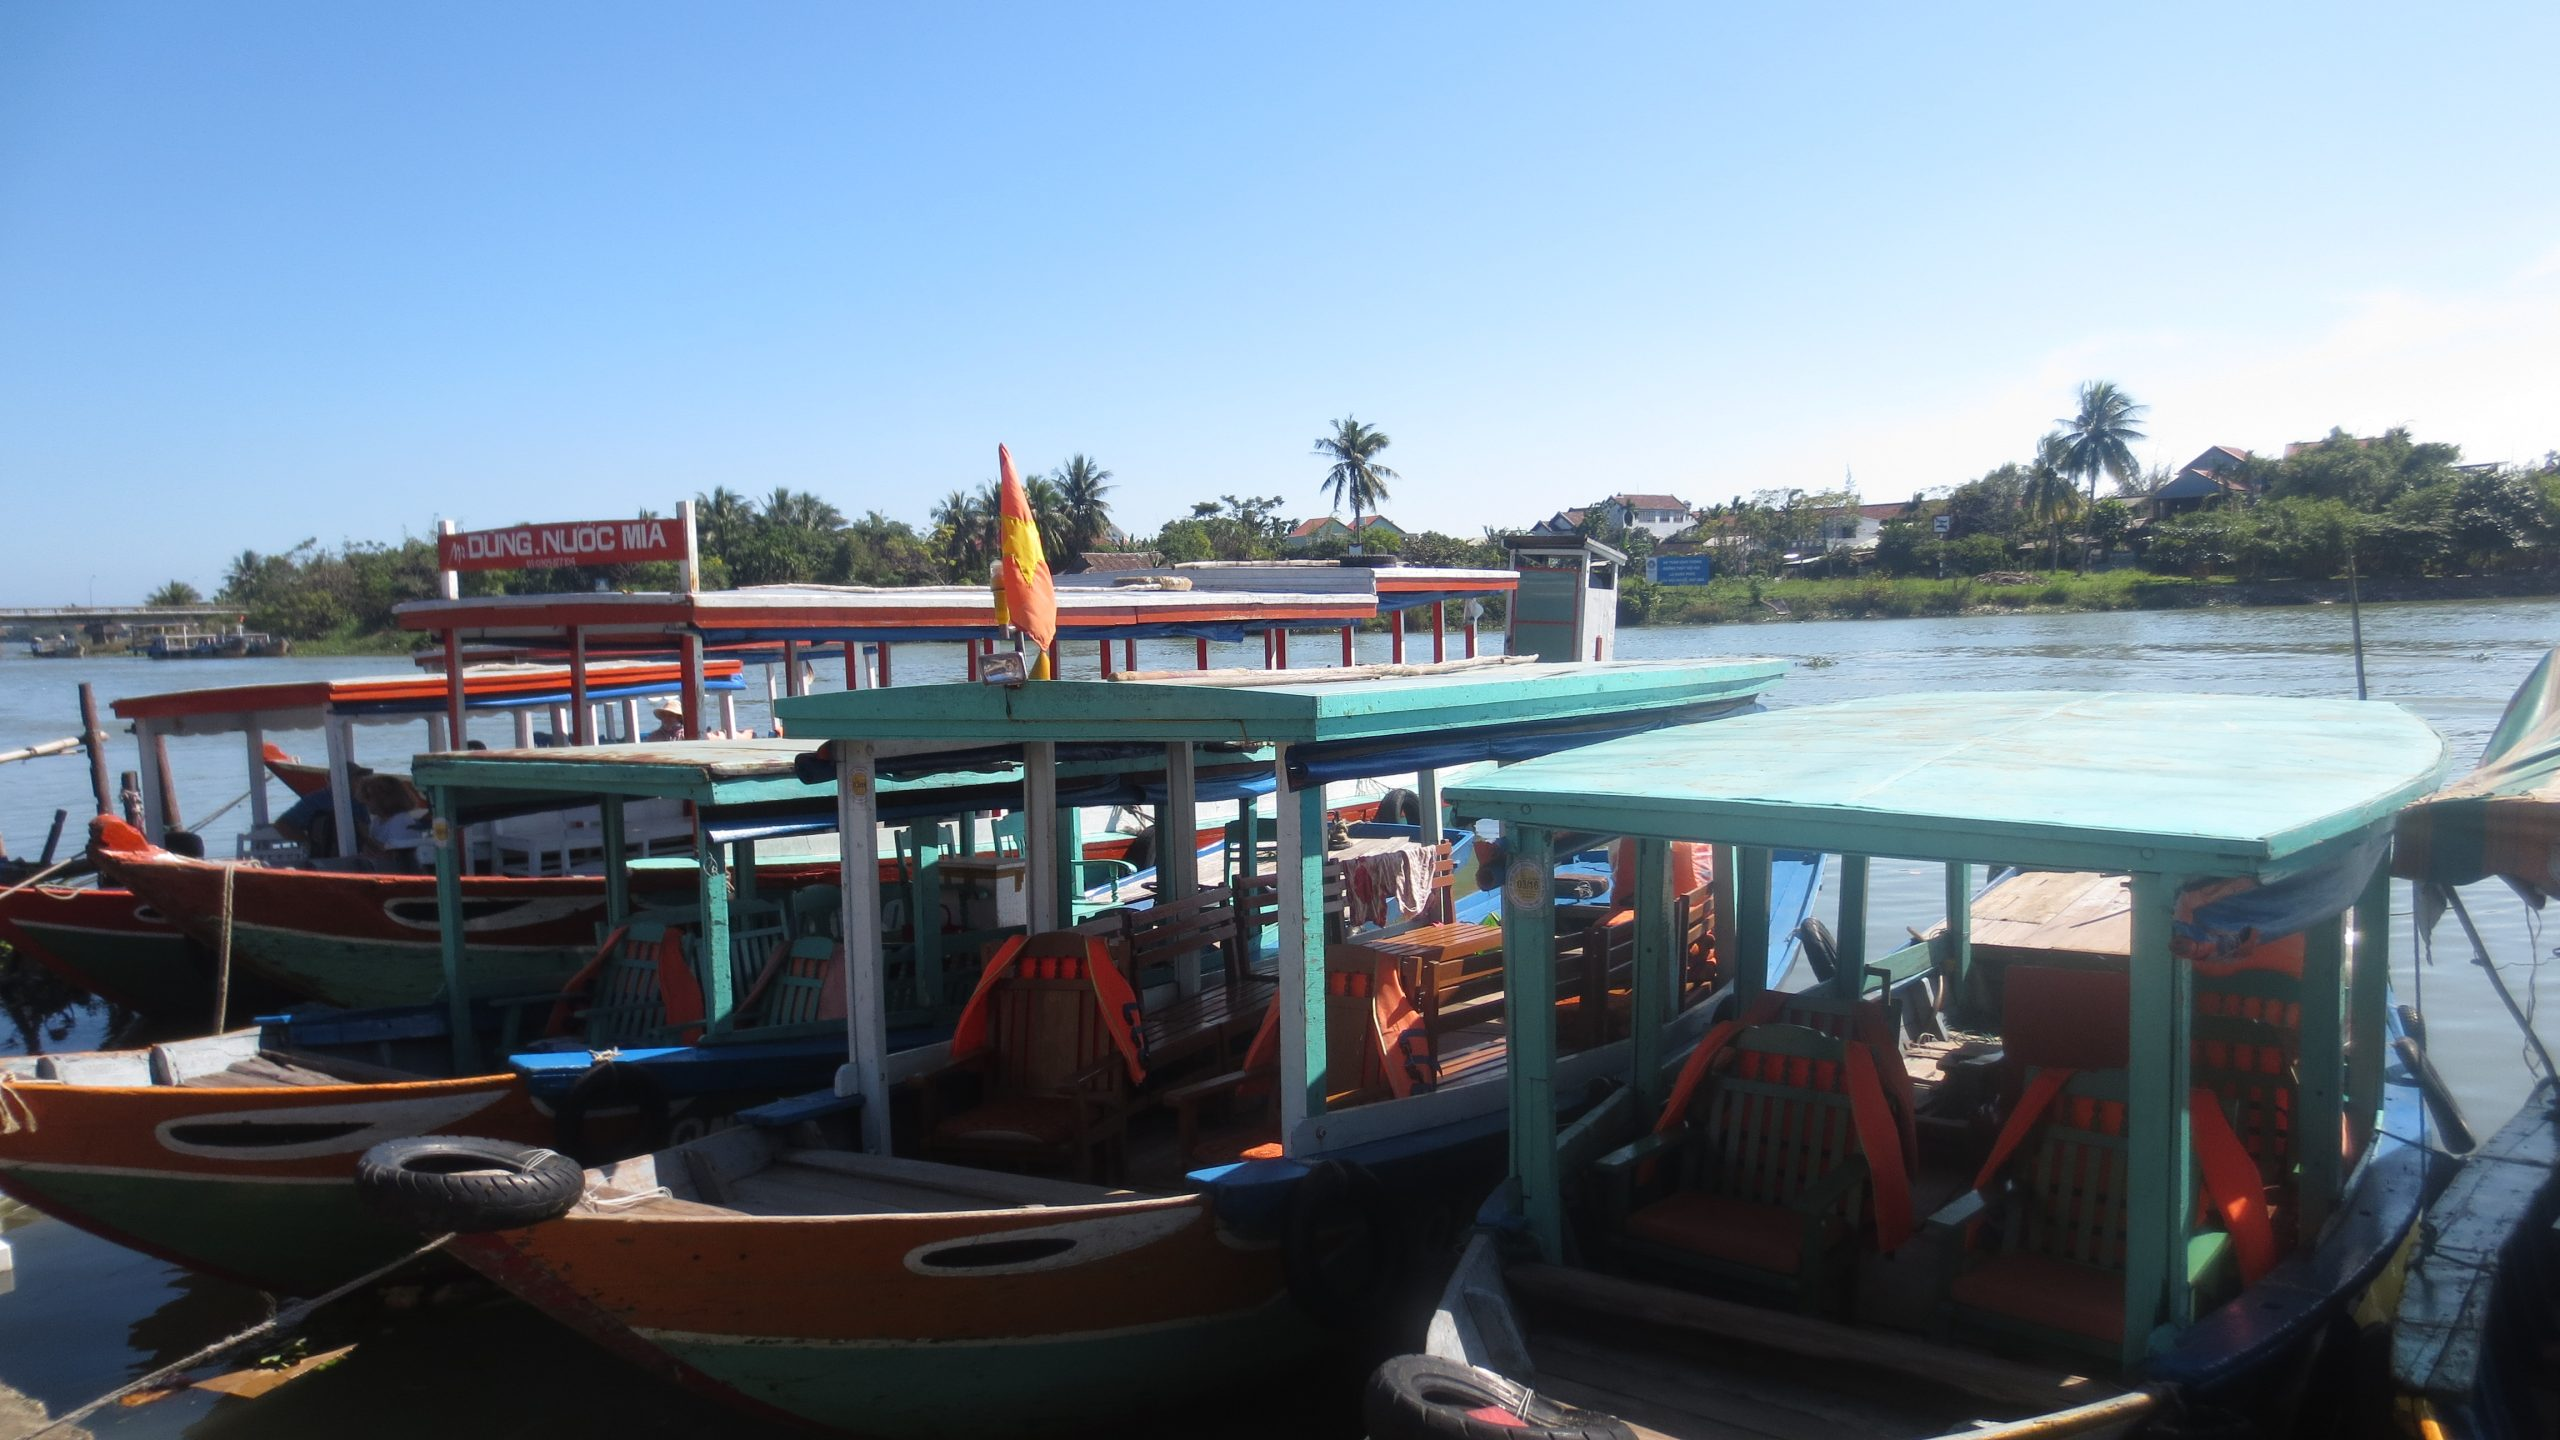 Hoi An: 5 Things to do in the Lantern City